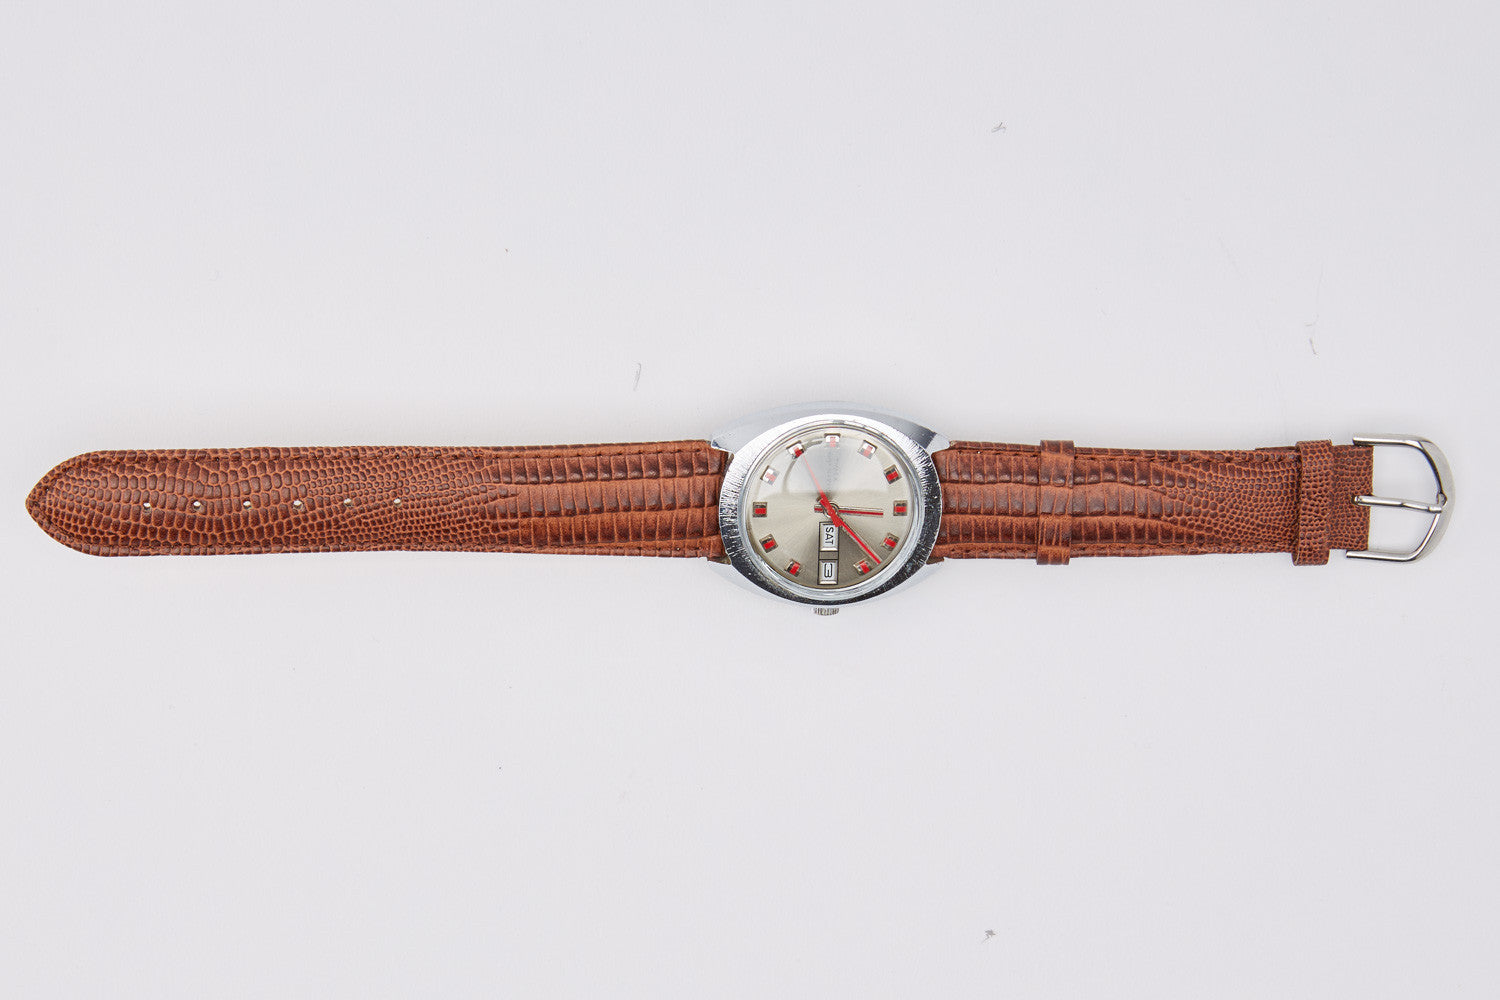 Vintage 1970's Timex Day/Date Sports Watch